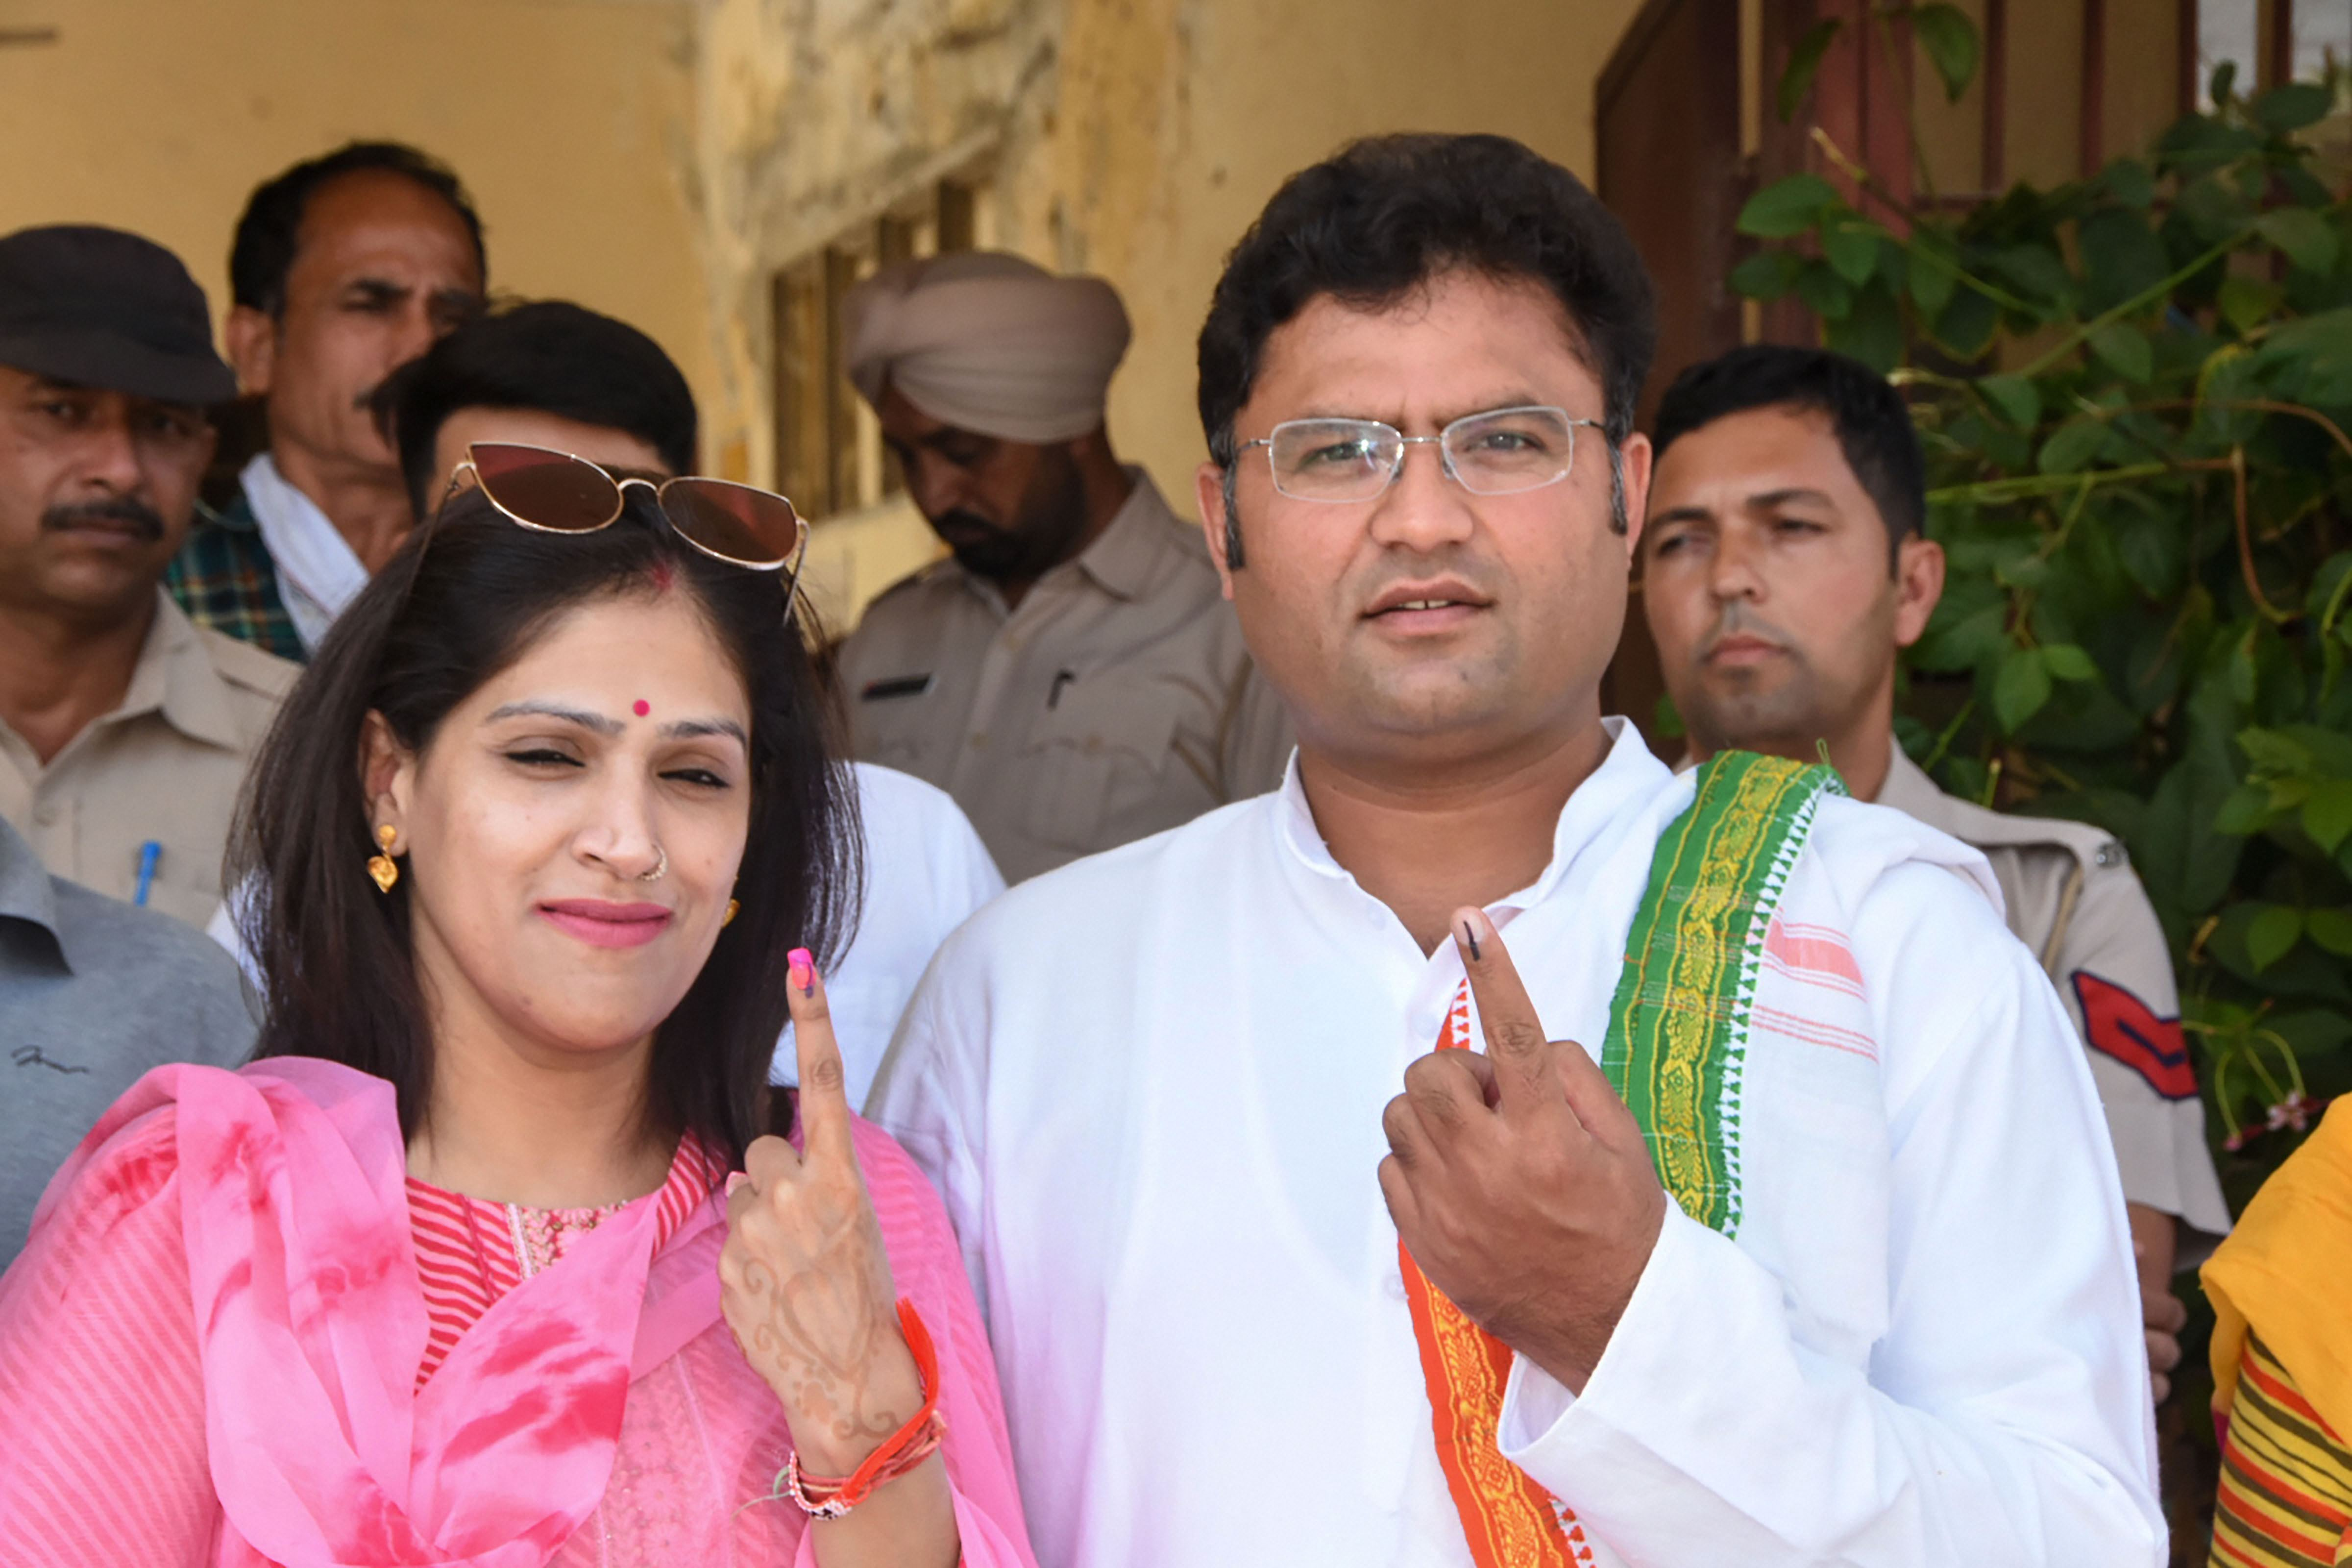 Former Haryana Congress president Ashok Tanwar and his wife Avantika Maken show their inked finger after casting their votes during the Haryana Assembly elections, in Sirsa, Monday, October 21, 2019.